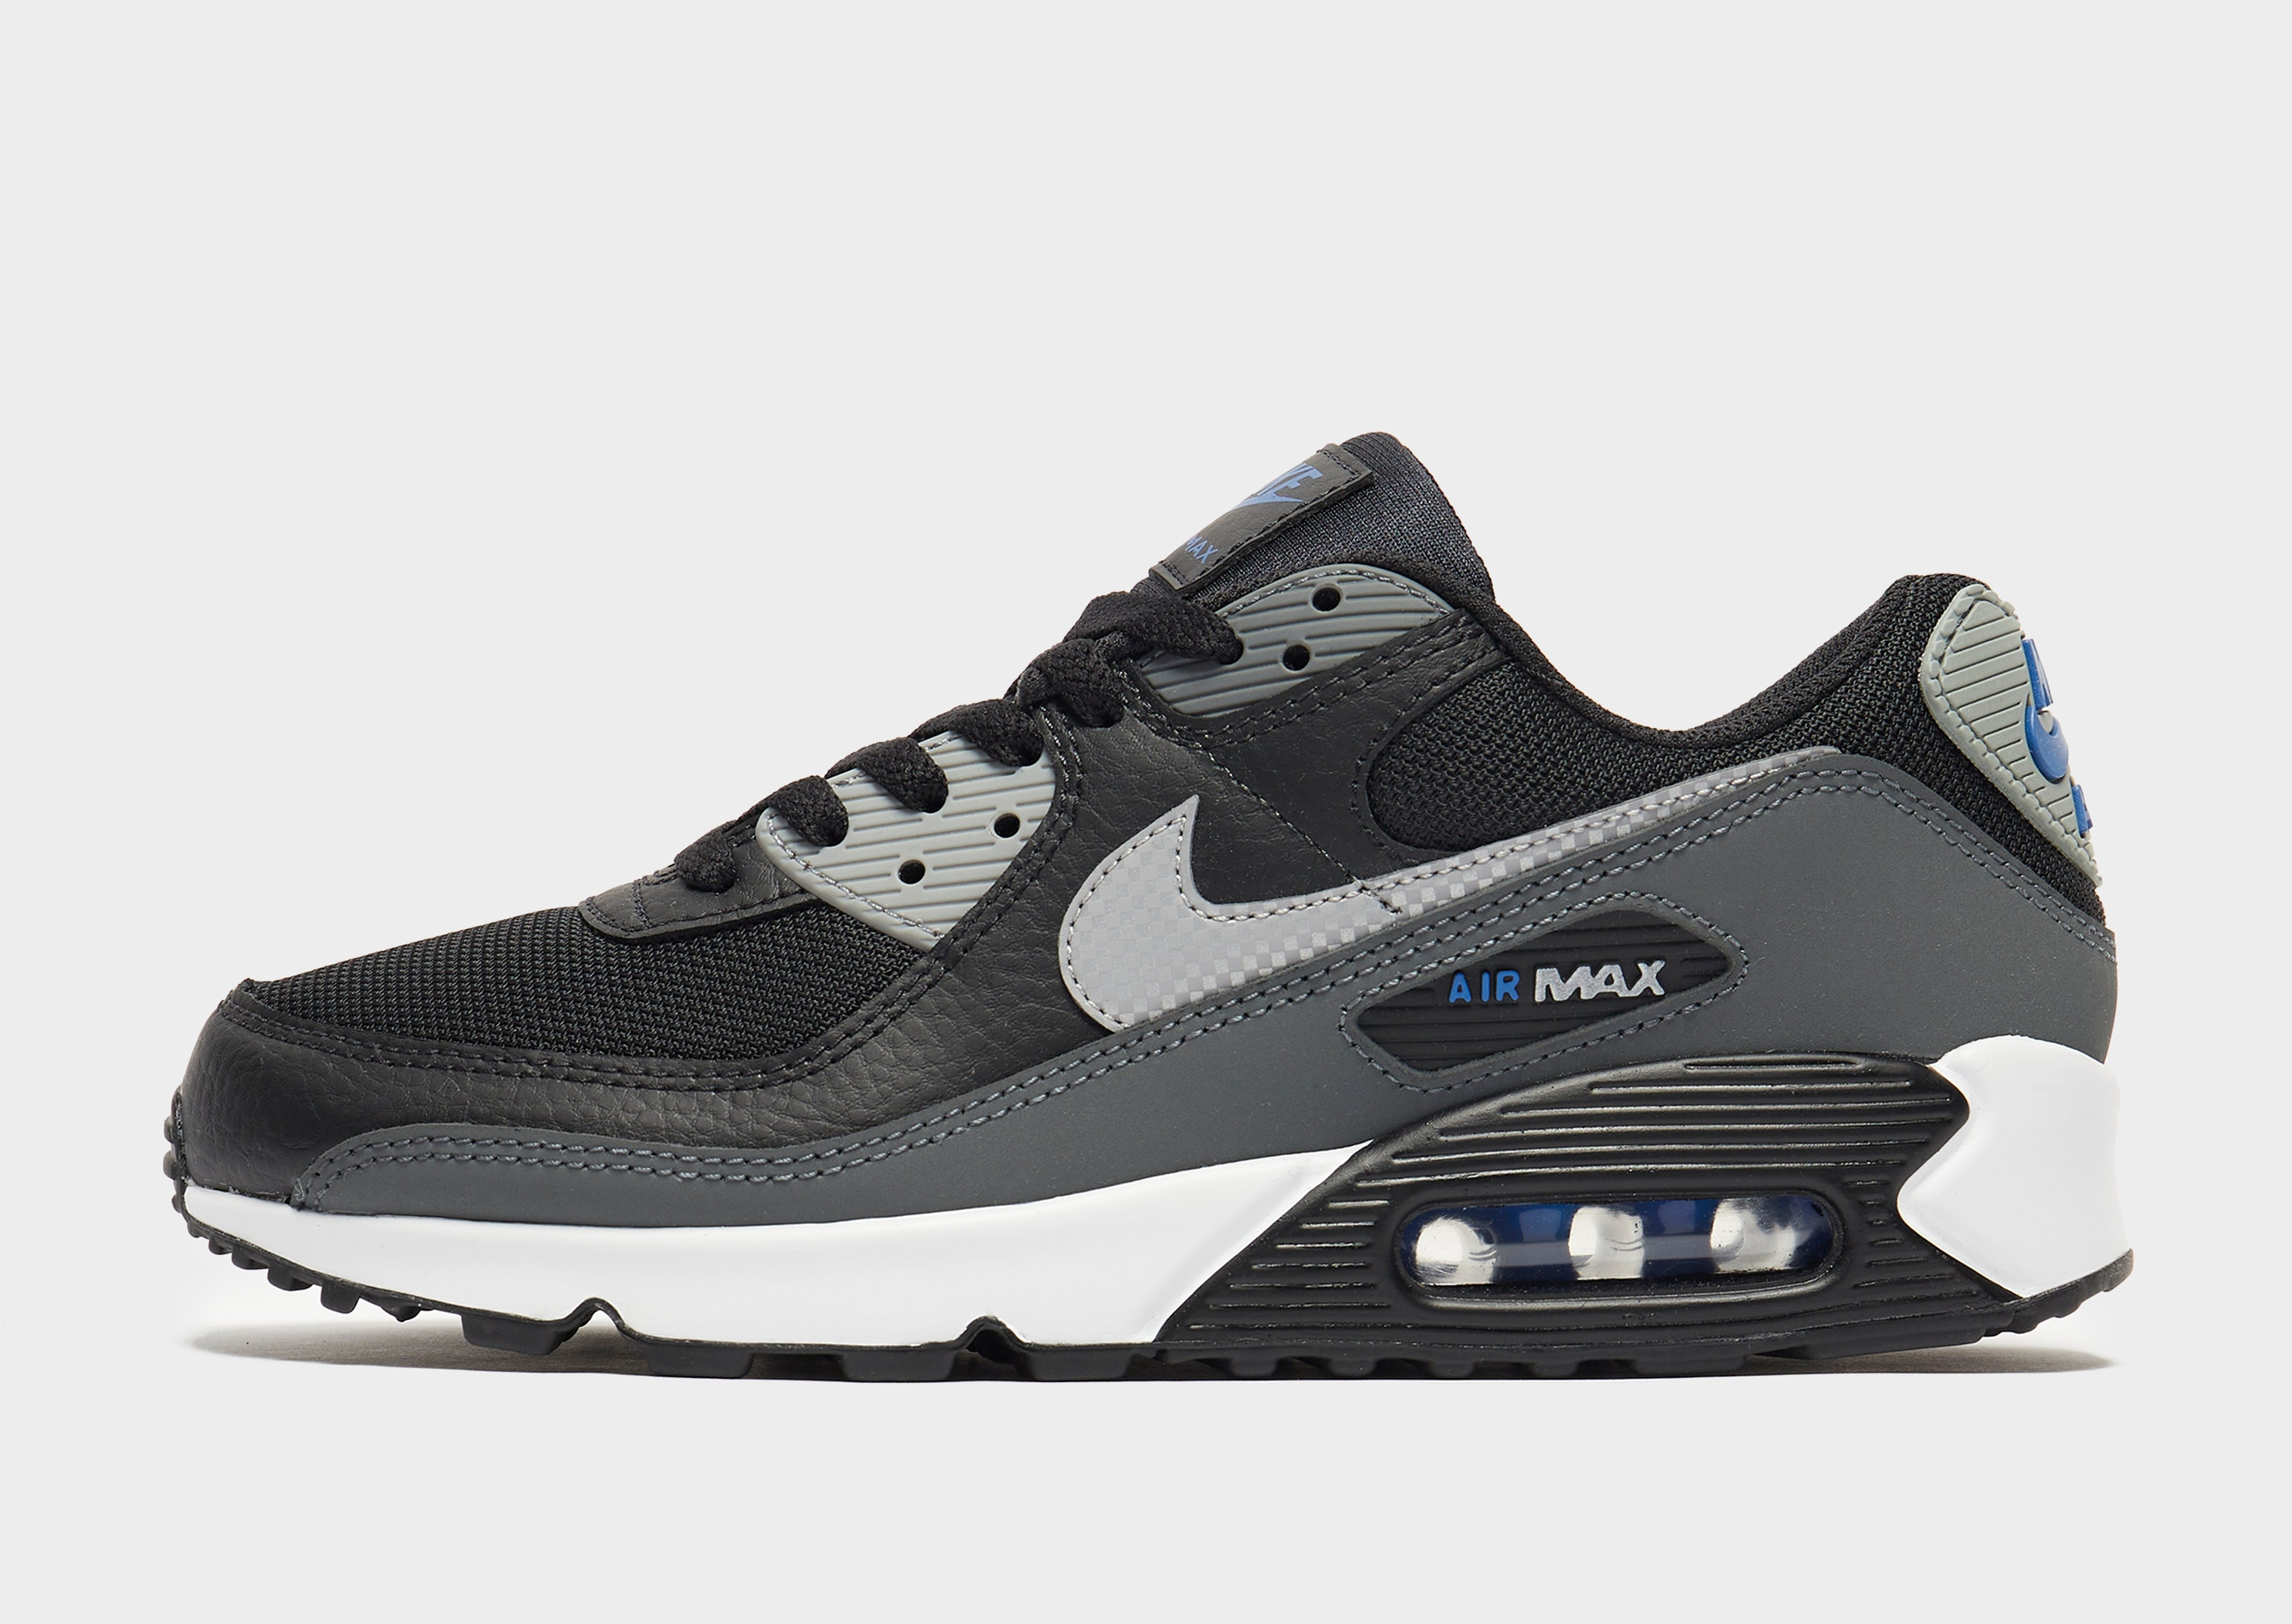 Nike Chaussures Nike Air Max 90 pour Homme   JD Sports